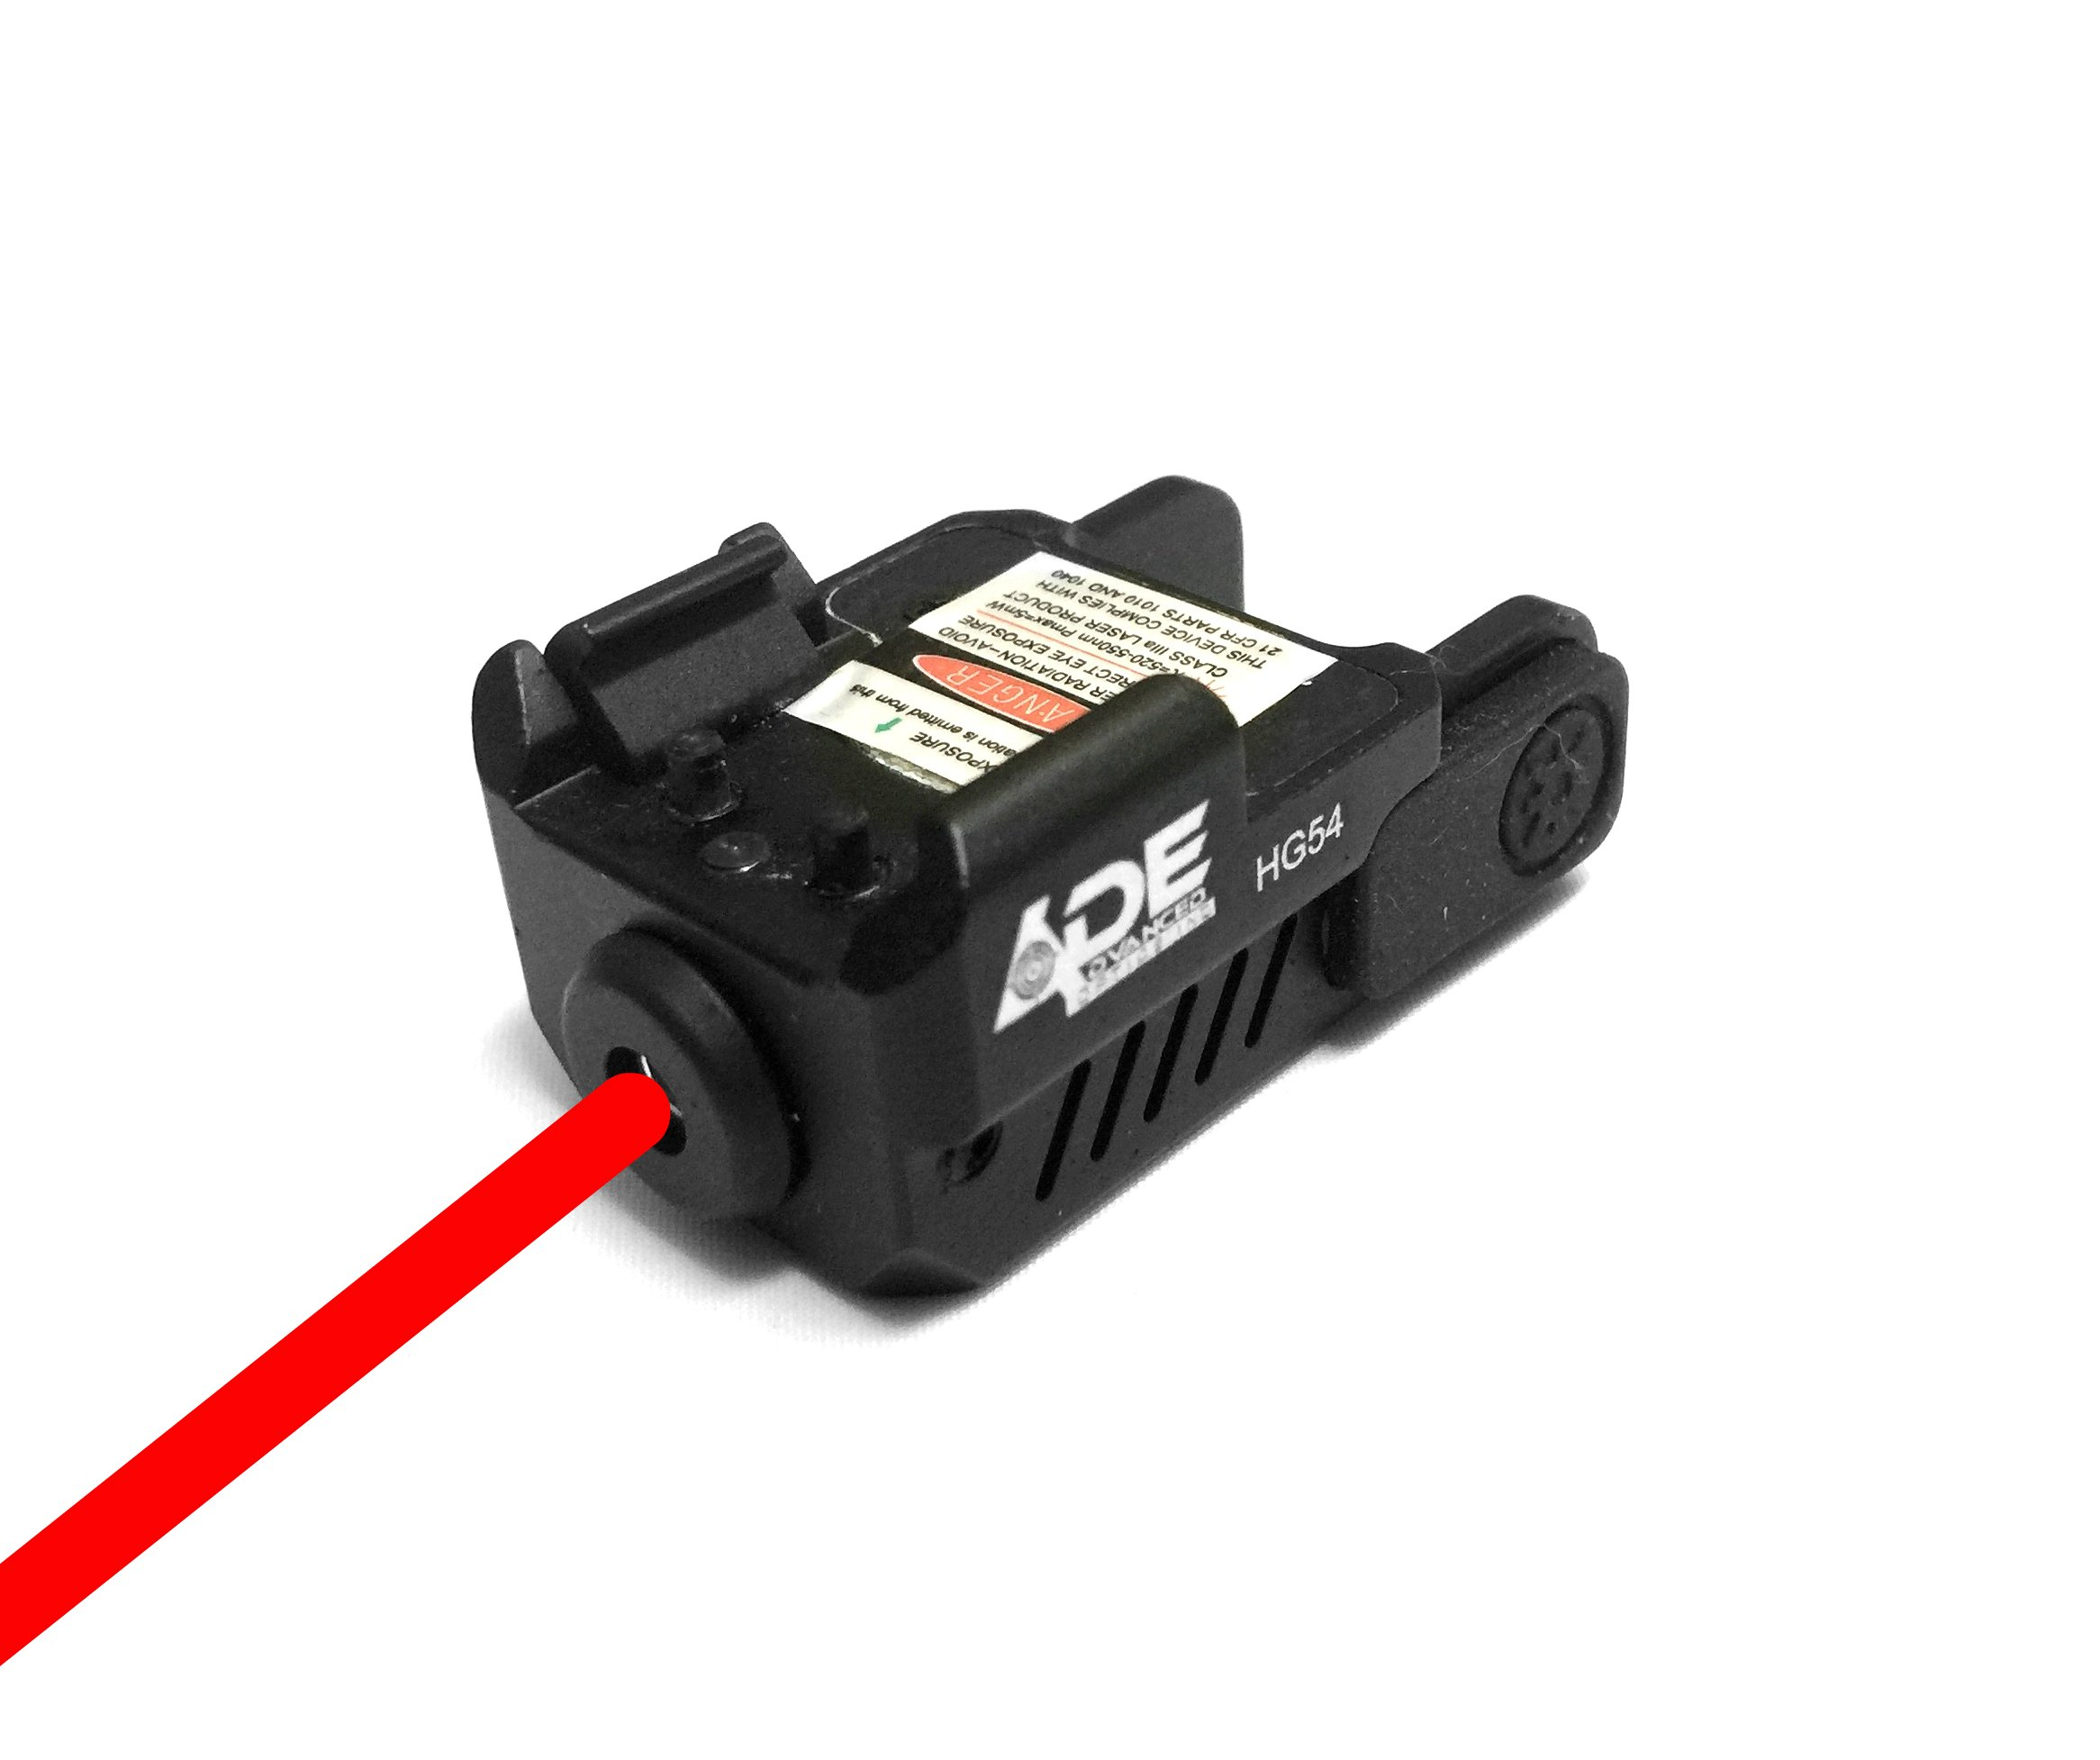 Ade Advanced Optics HG54R-1 Universal Laser Sight, Red